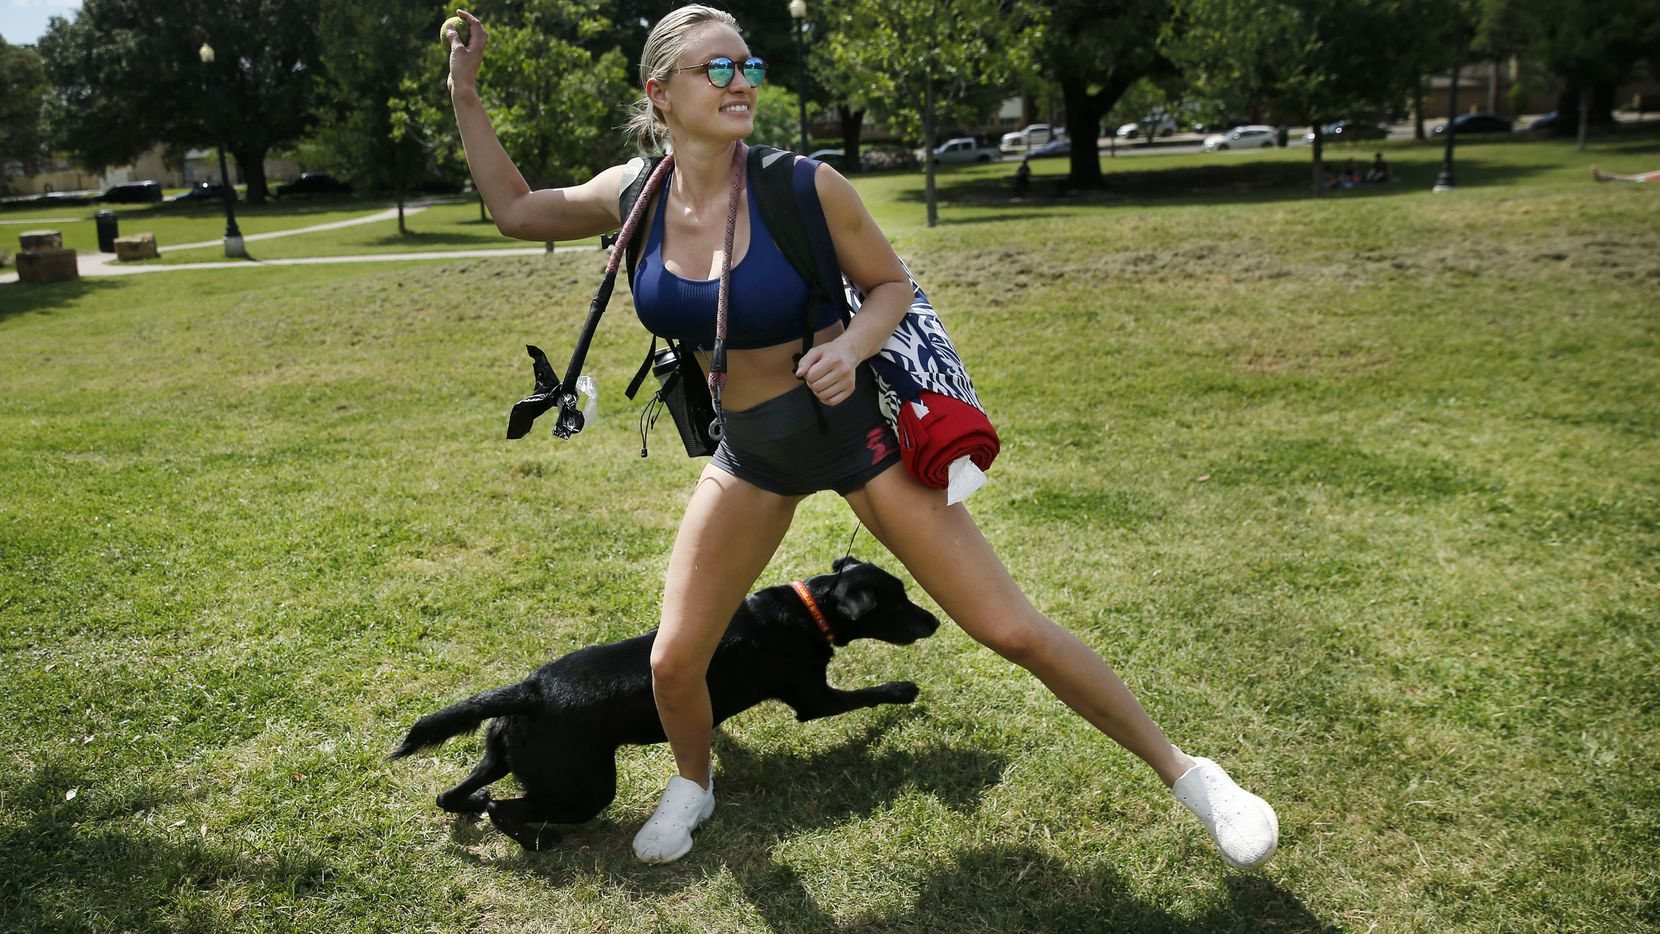 Amanda Calhoun of Dallas throws a tennis ball to her black lab KC at Cole Park on Friday.  She says she took the rest of Friday off to come to the park and relax. (